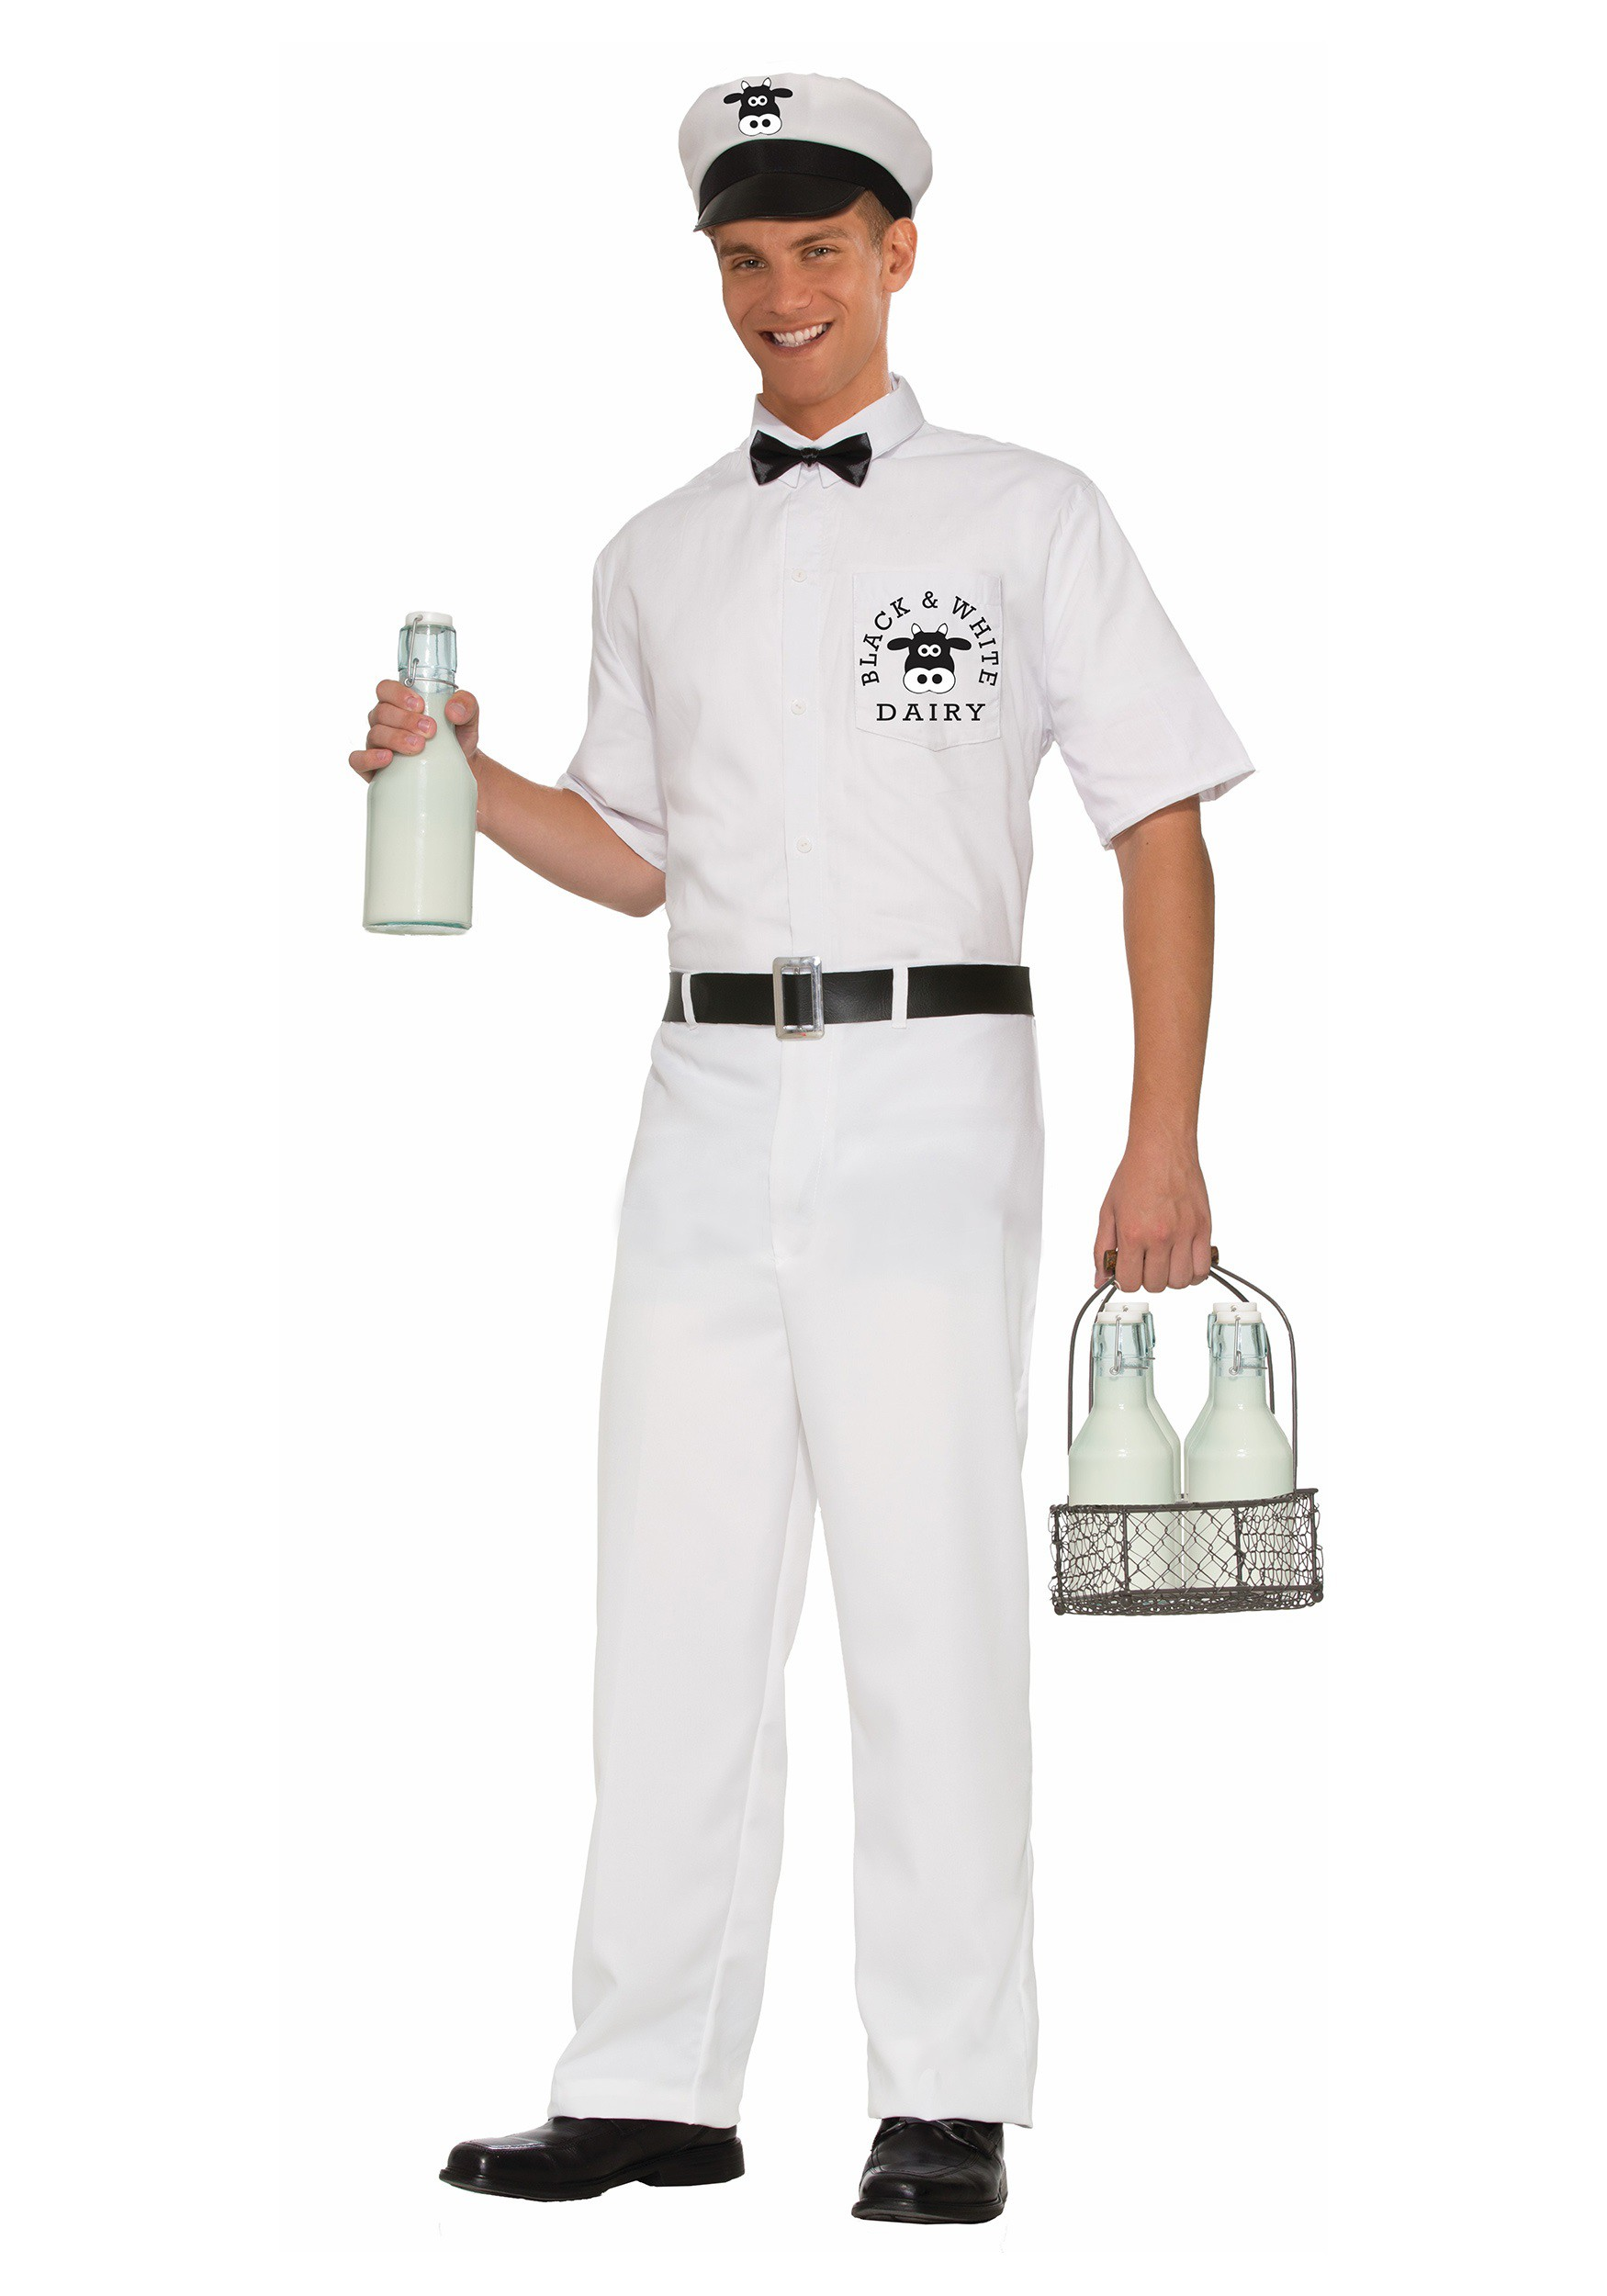 The milkman brings his milk around